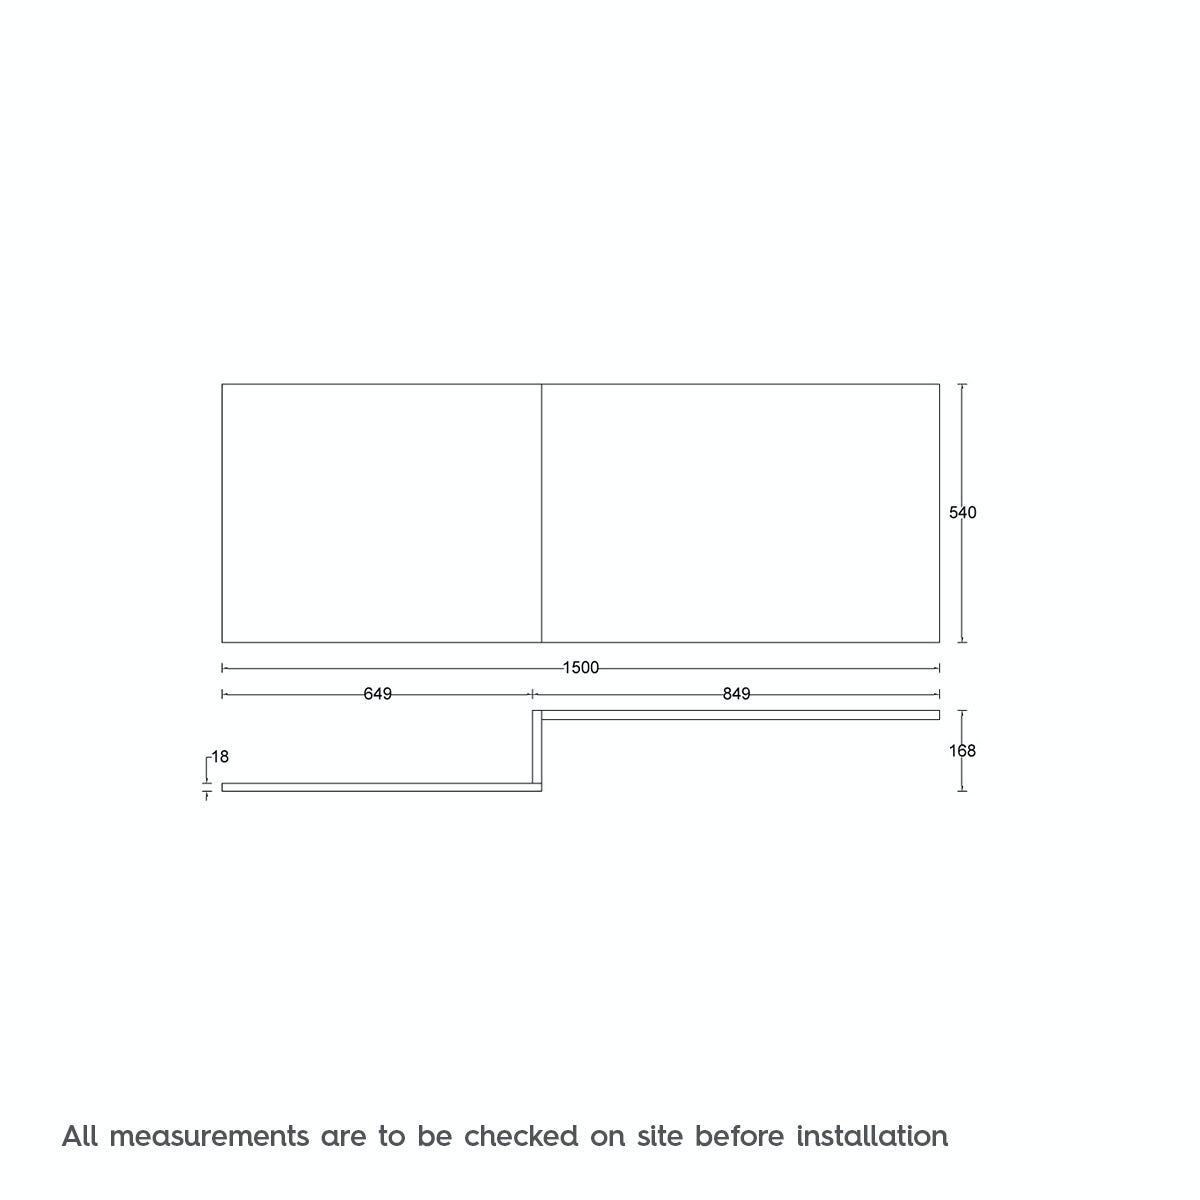 Dimensions for L shaped shower bath wooden front panel Drift walnut 1500mm